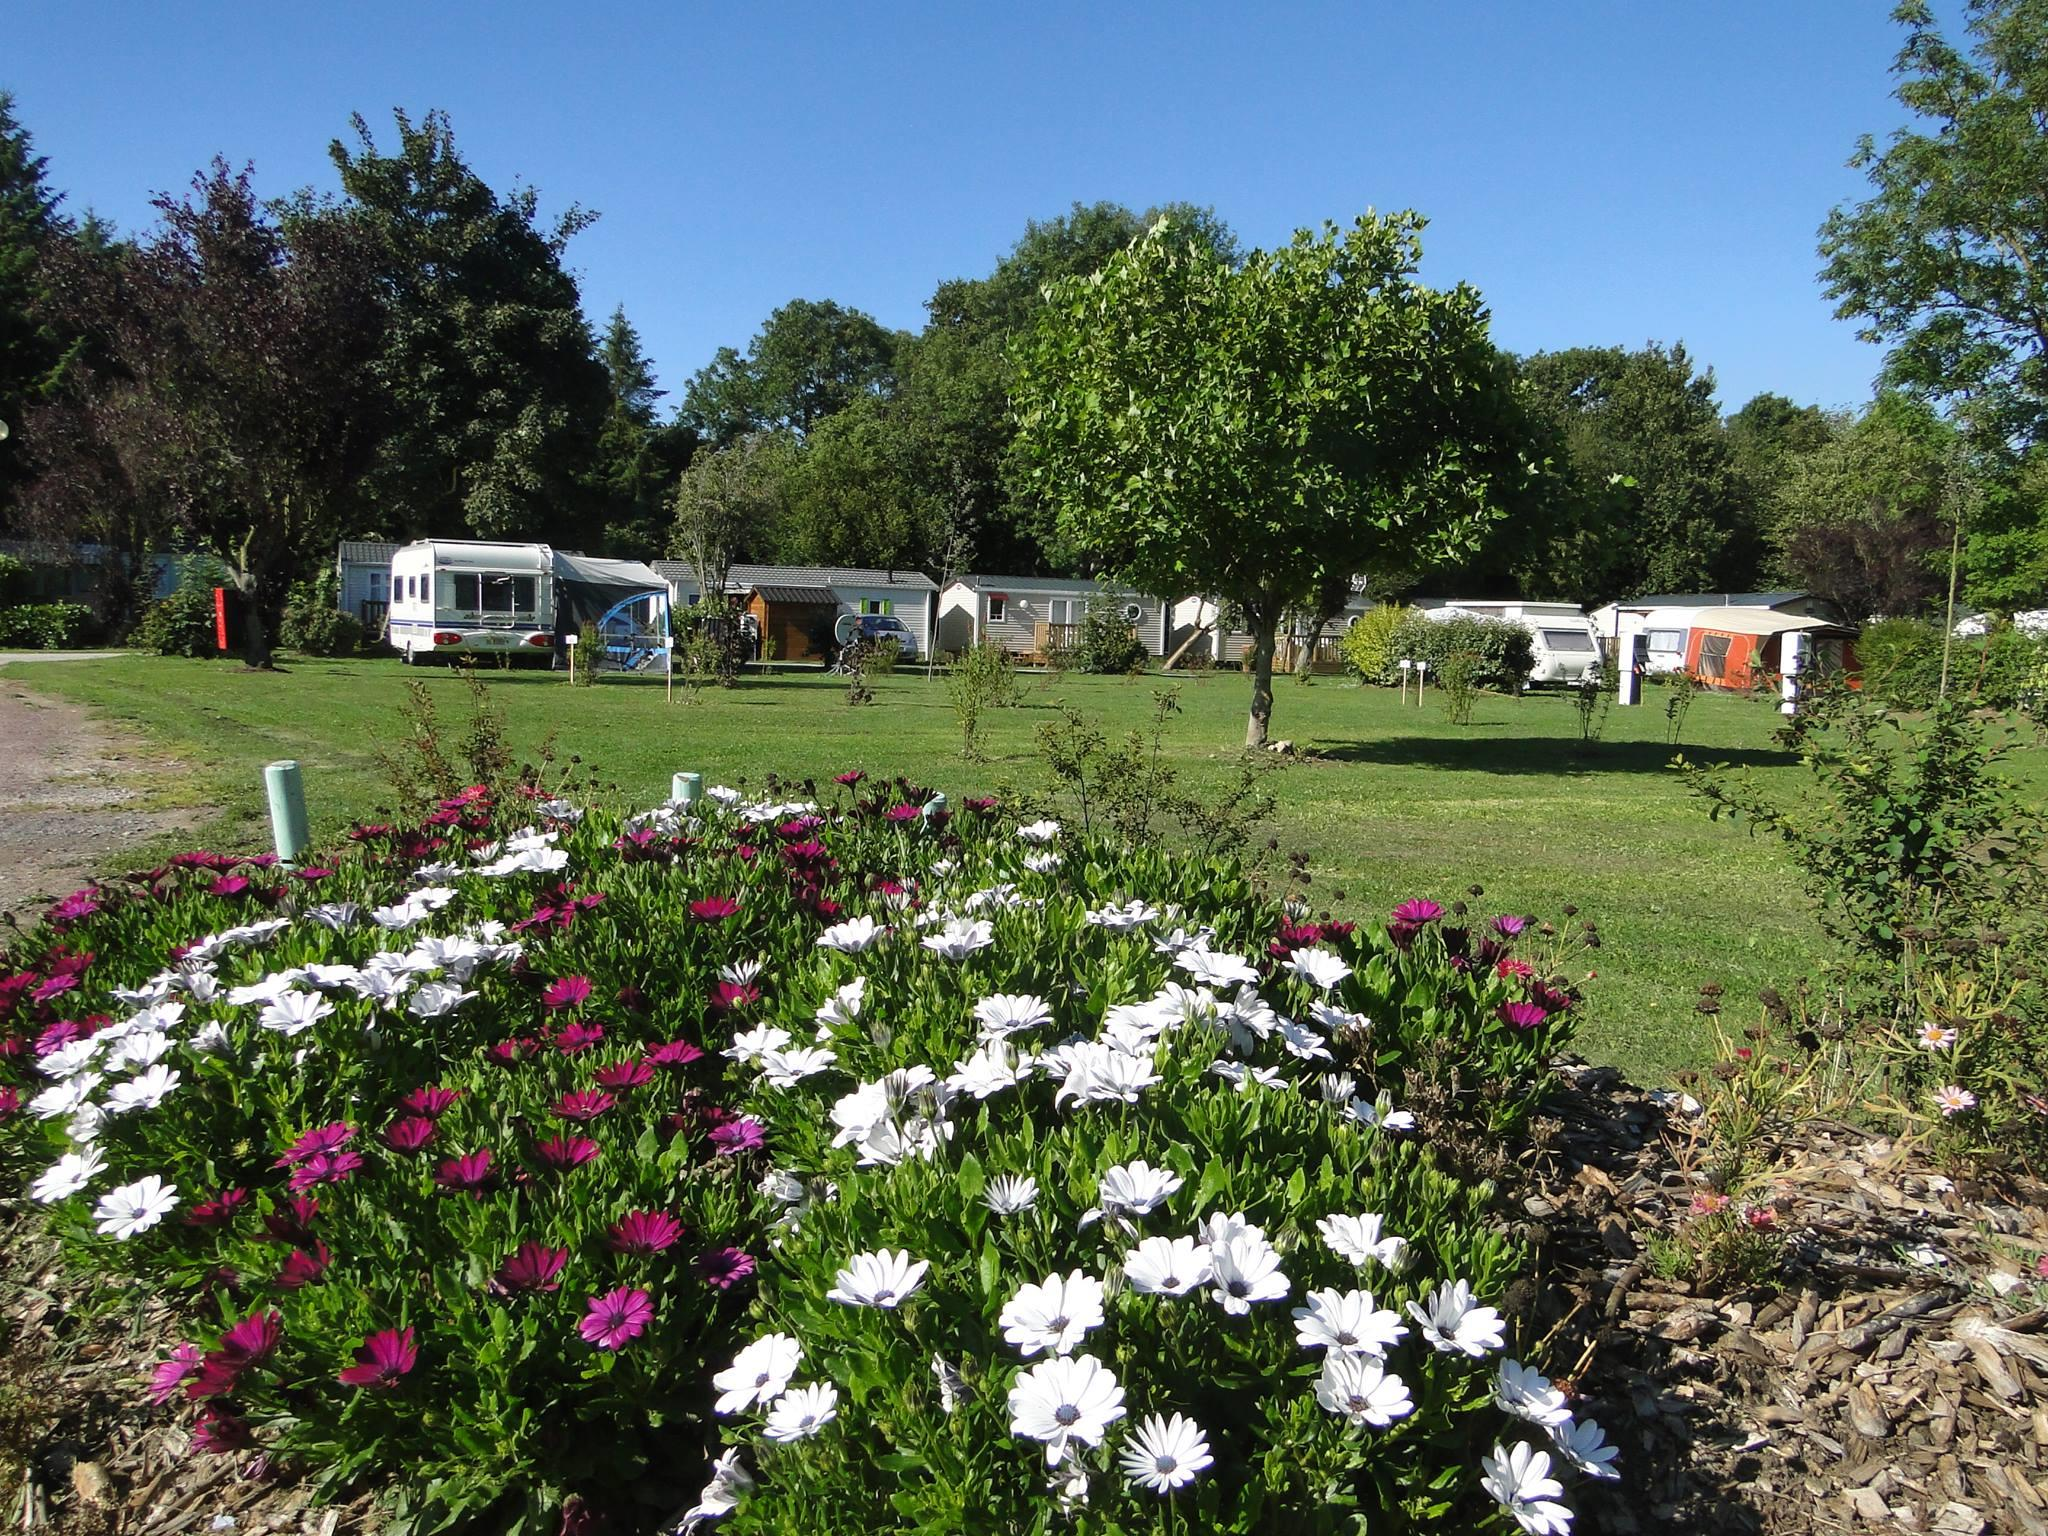 Camping Domaine du Rompval, Mers-les-Bains, Somme